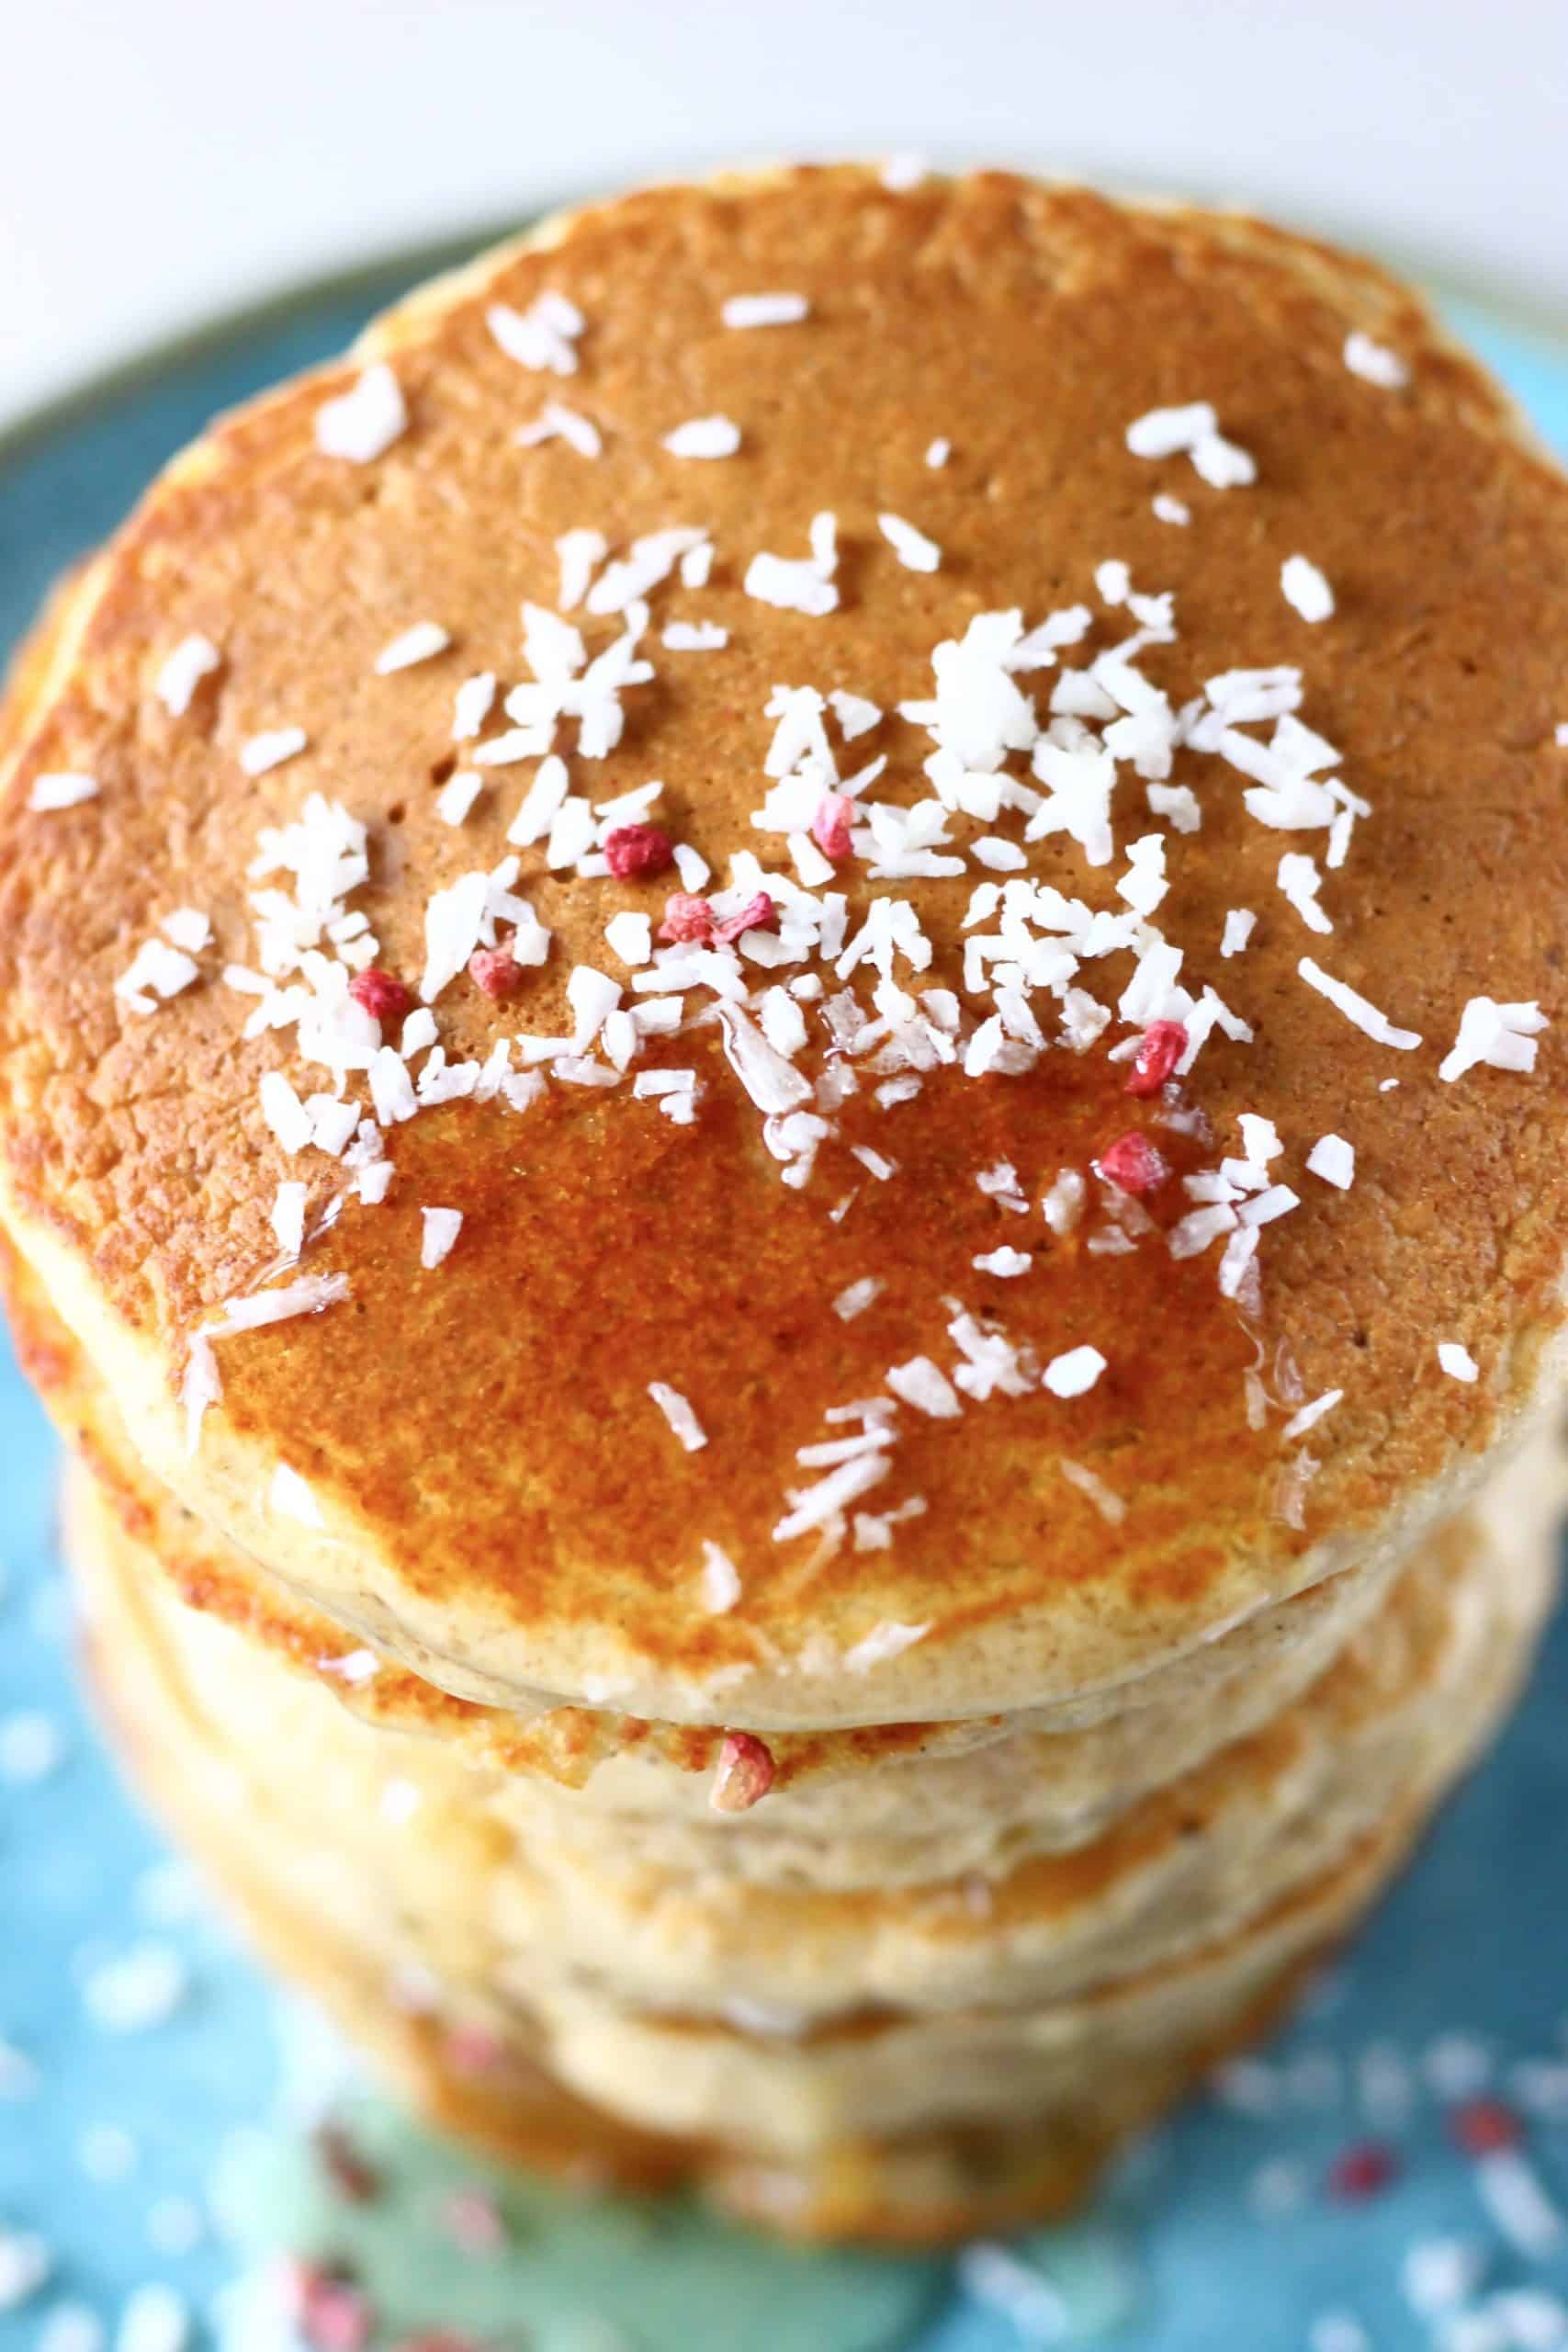 A stack of oat flour pancakes topped with desiccated coconut and syrup